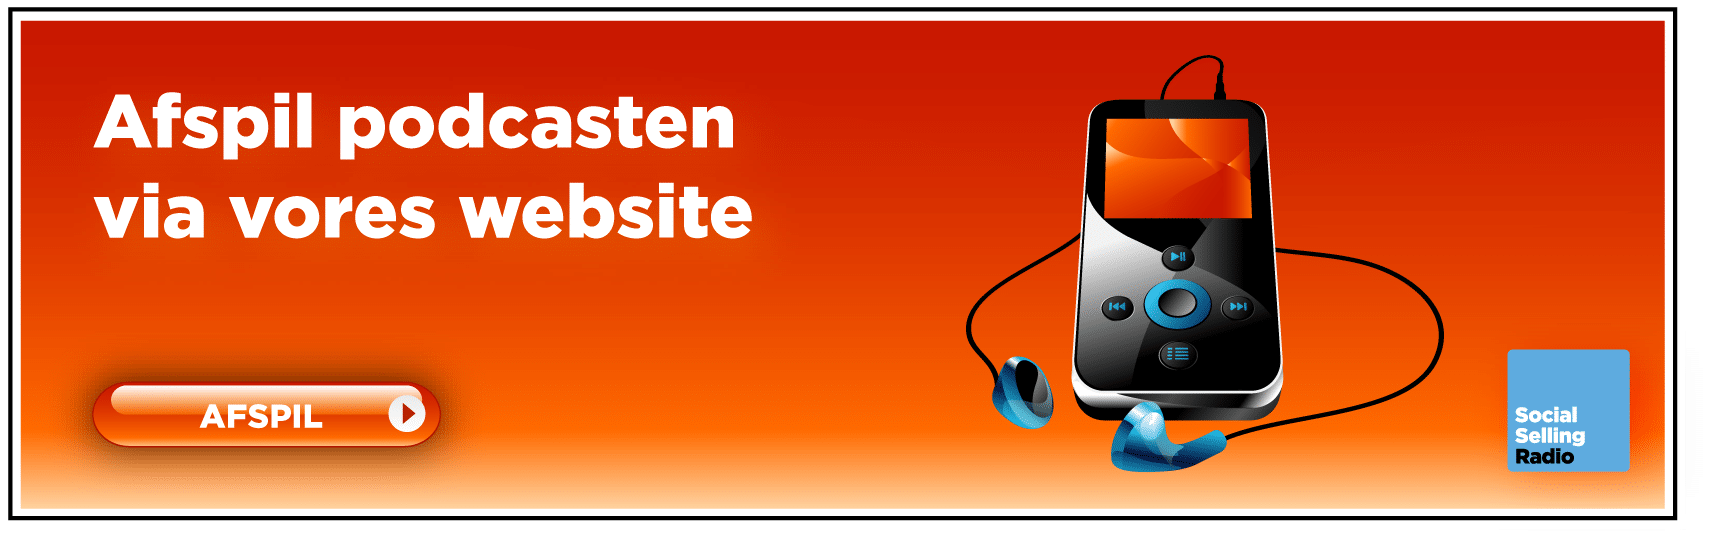 Afspil podcasten via website